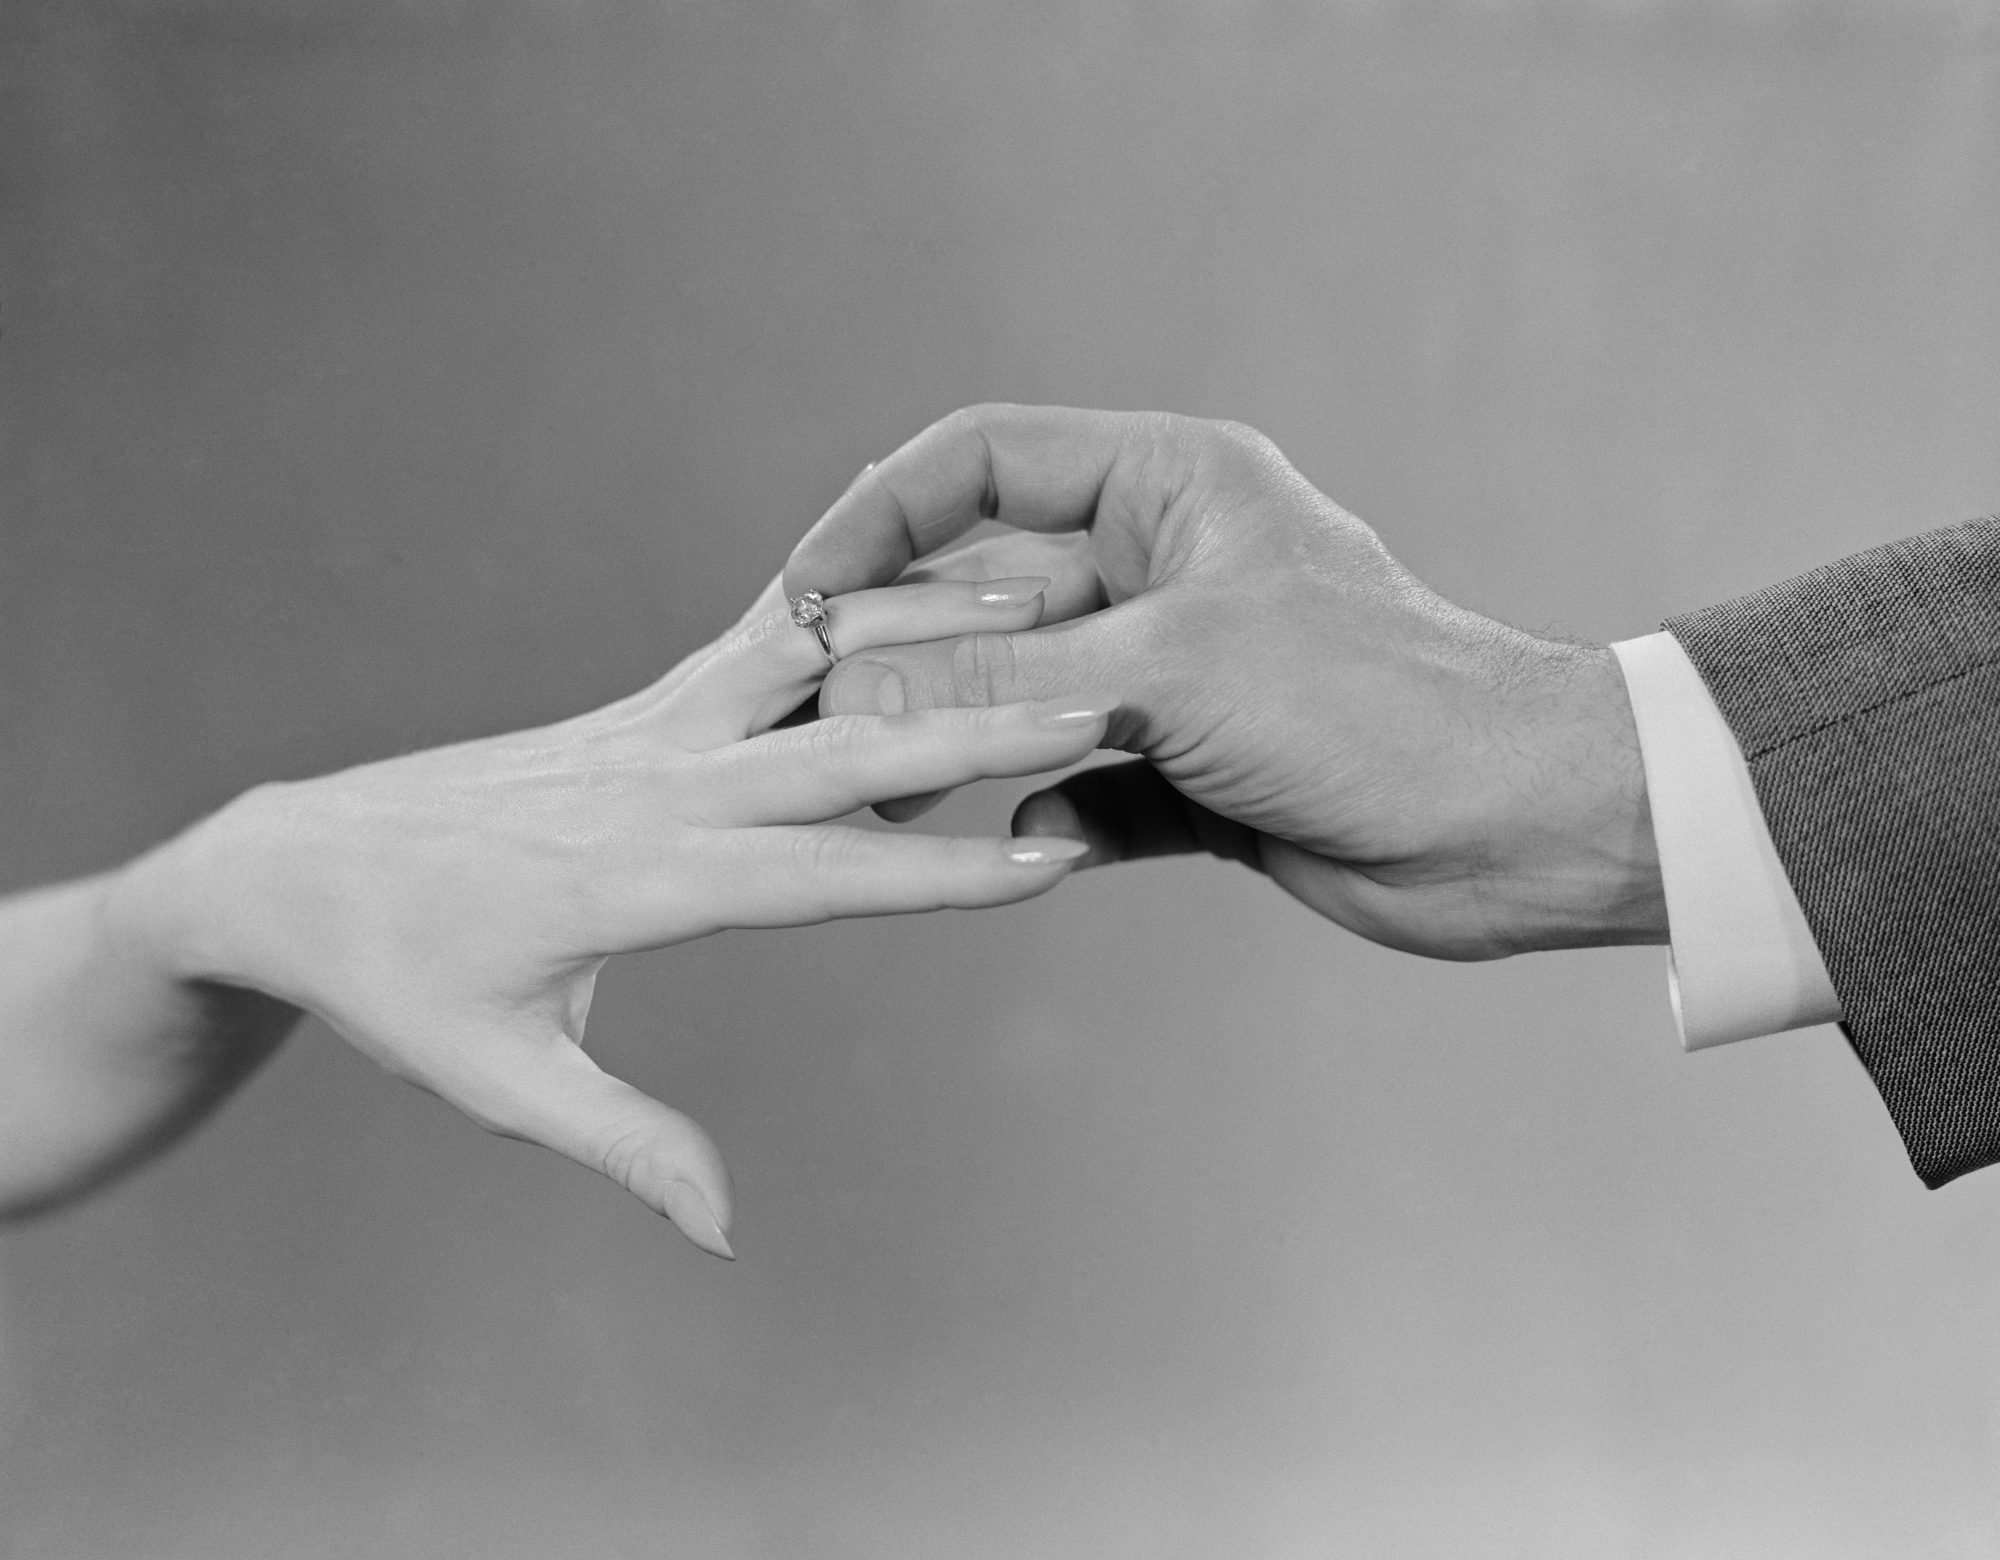 Man Placing Ring on Finger